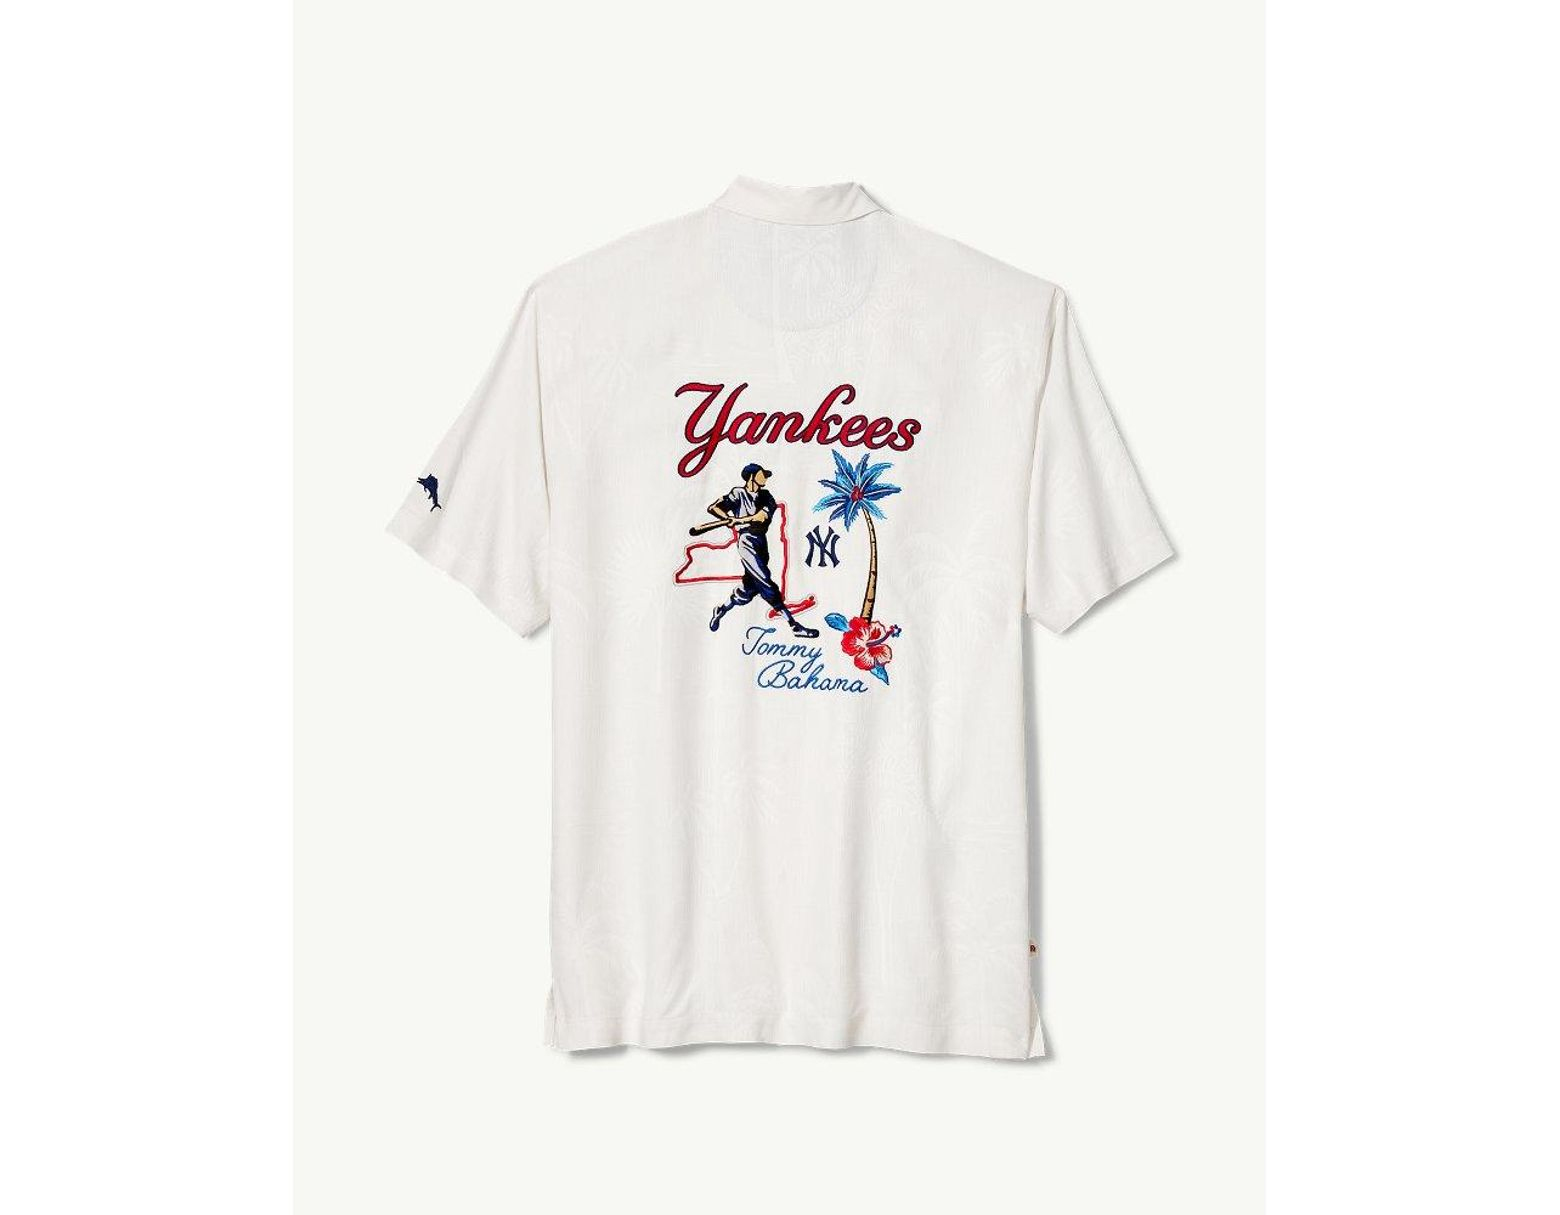 b5157742 Tommy Bahama Mlb® Yankees® Bases Loaded Camp Shirt in White for Men - Lyst